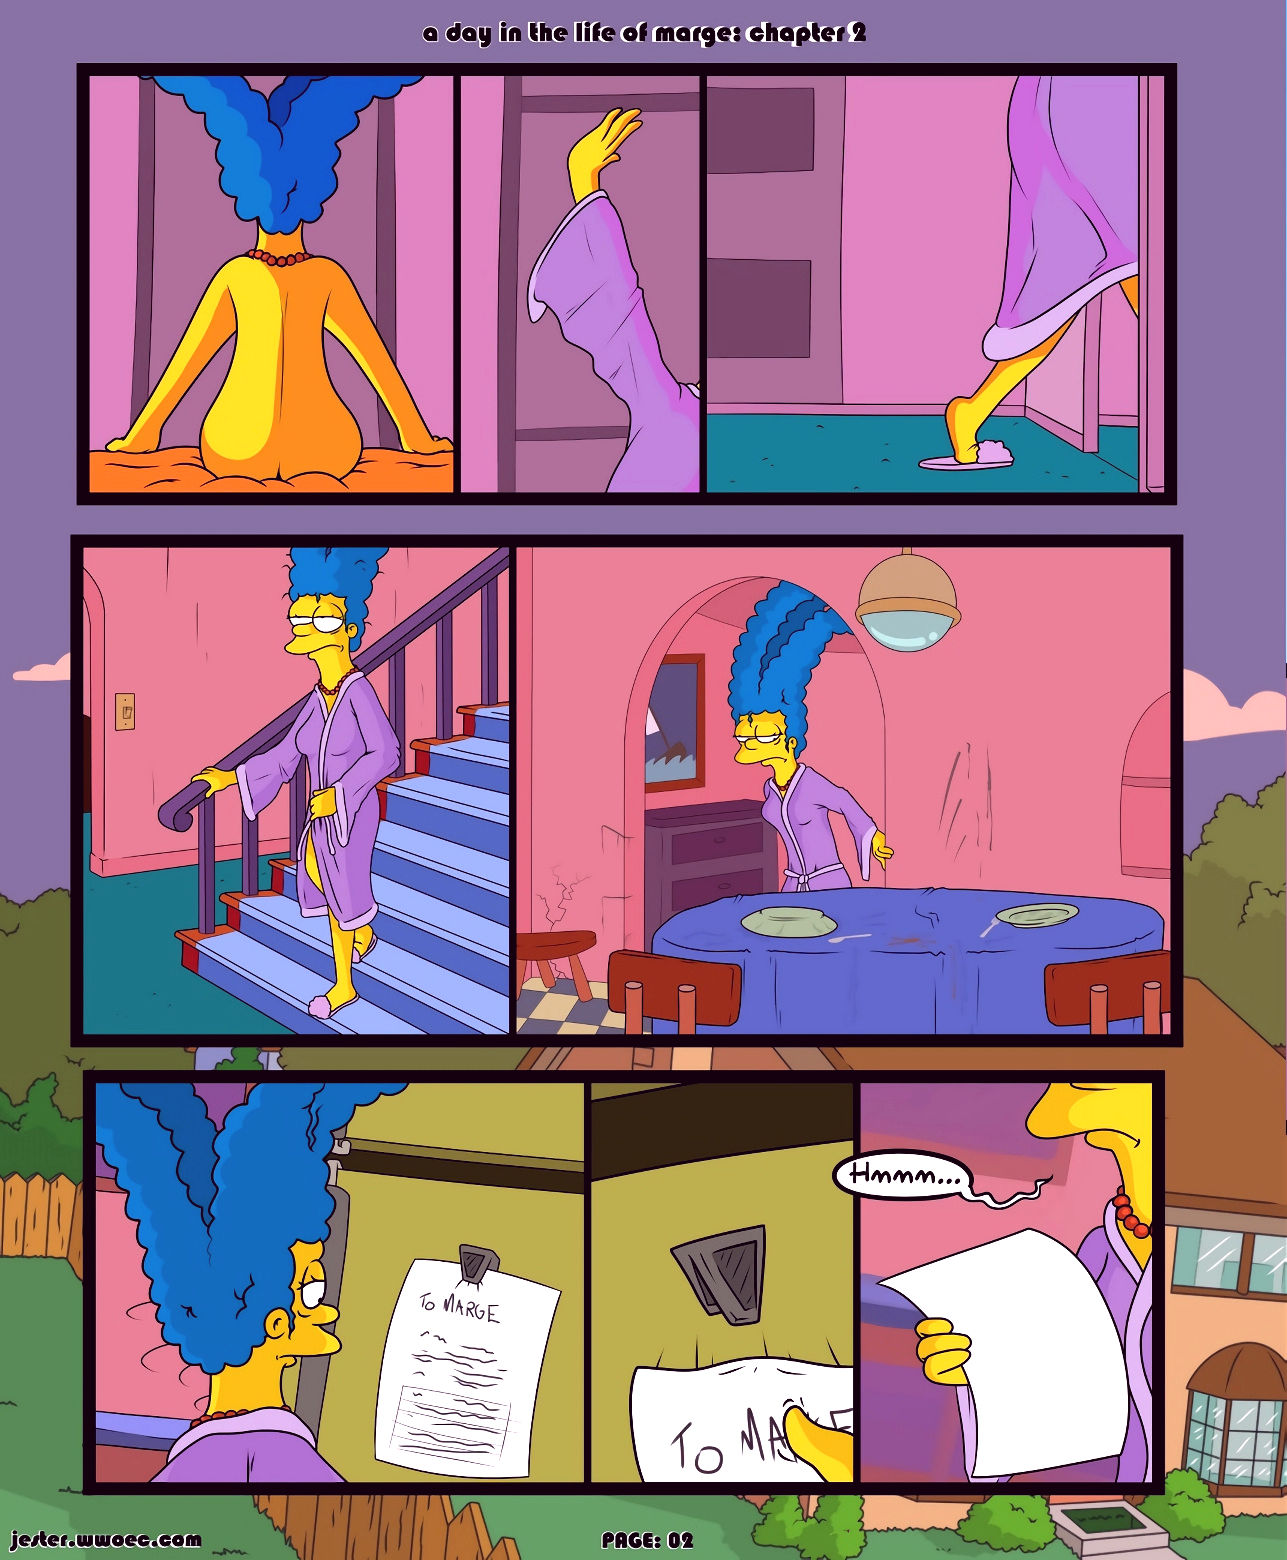 A day in the life of marge 2 porn comic picture 02